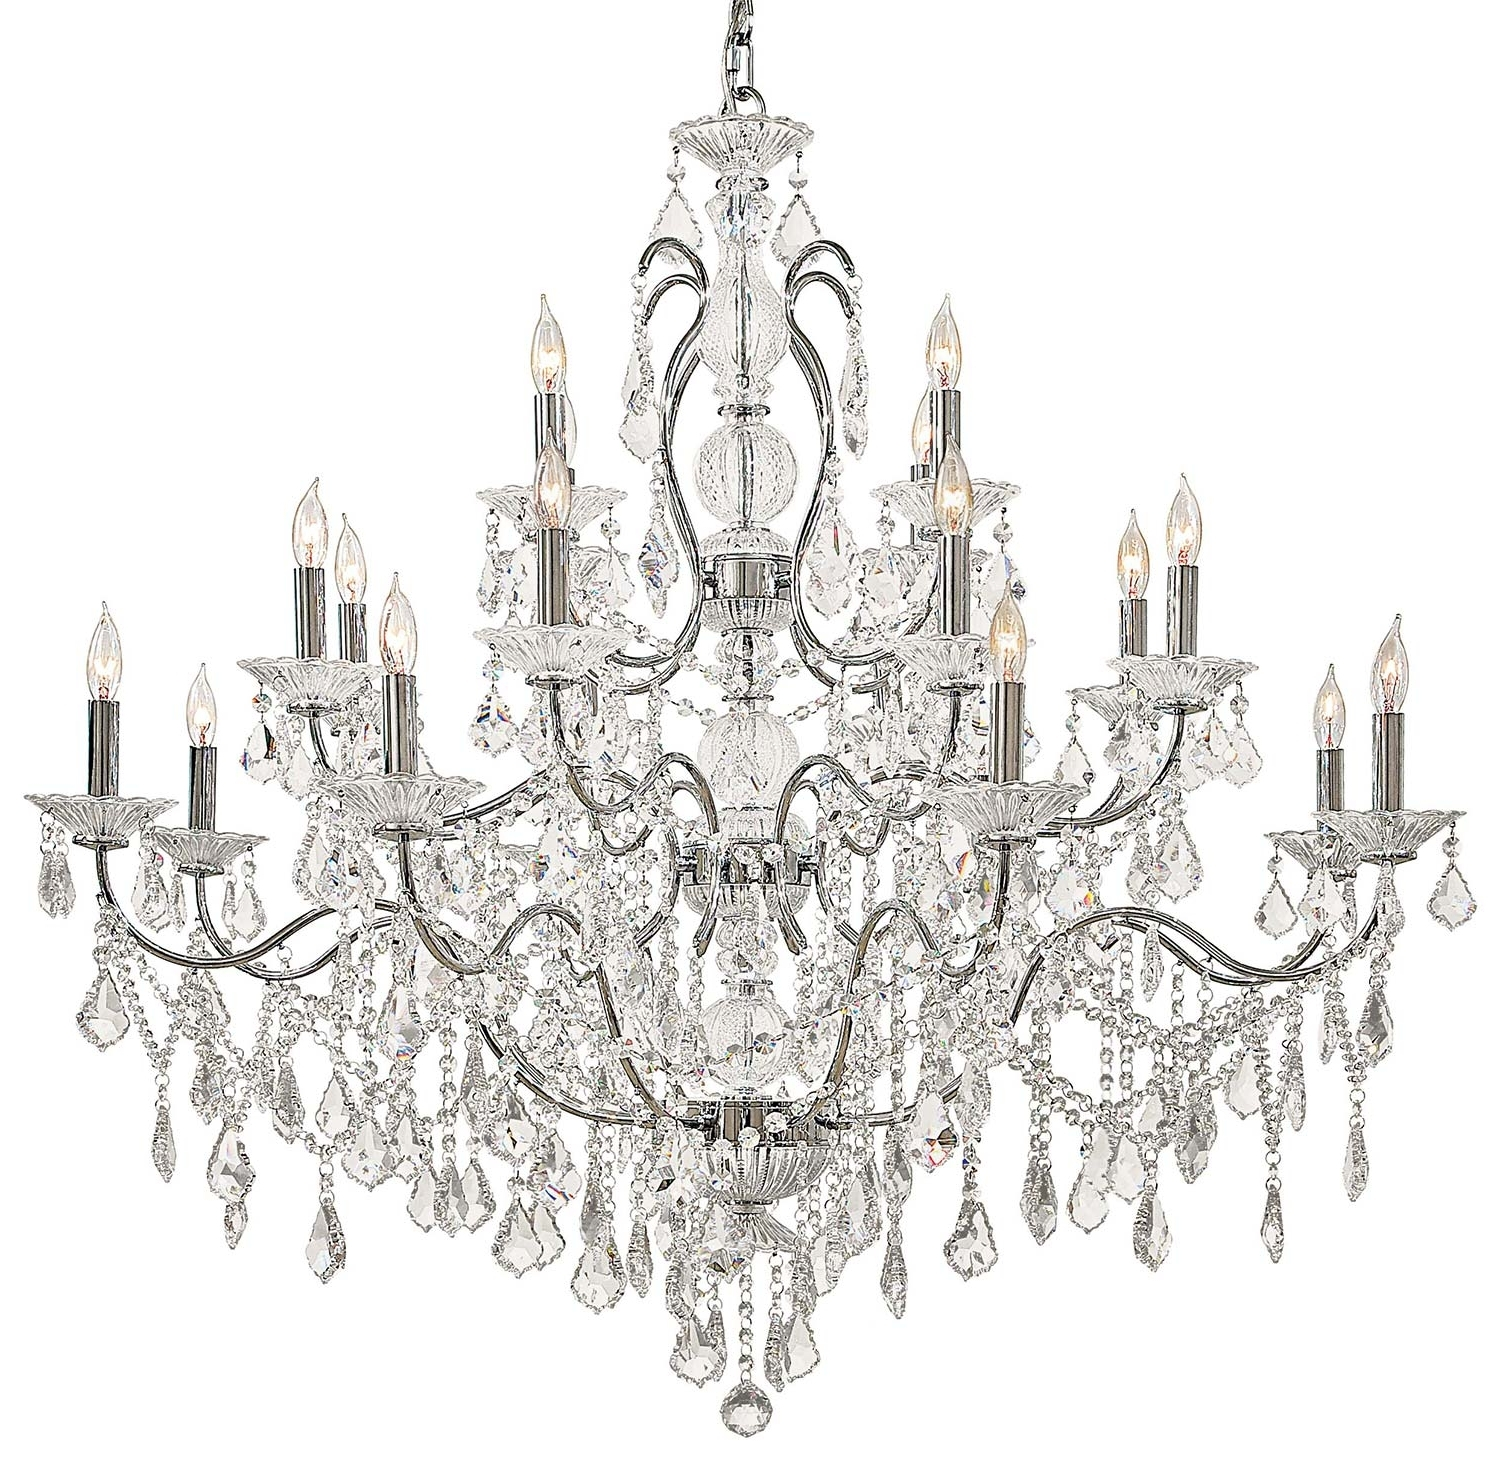 Vintage Style Chandelier In 2018 Light : Chandelier Crystals Vintage Php White Dining Crystal Room (View 13 of 15)